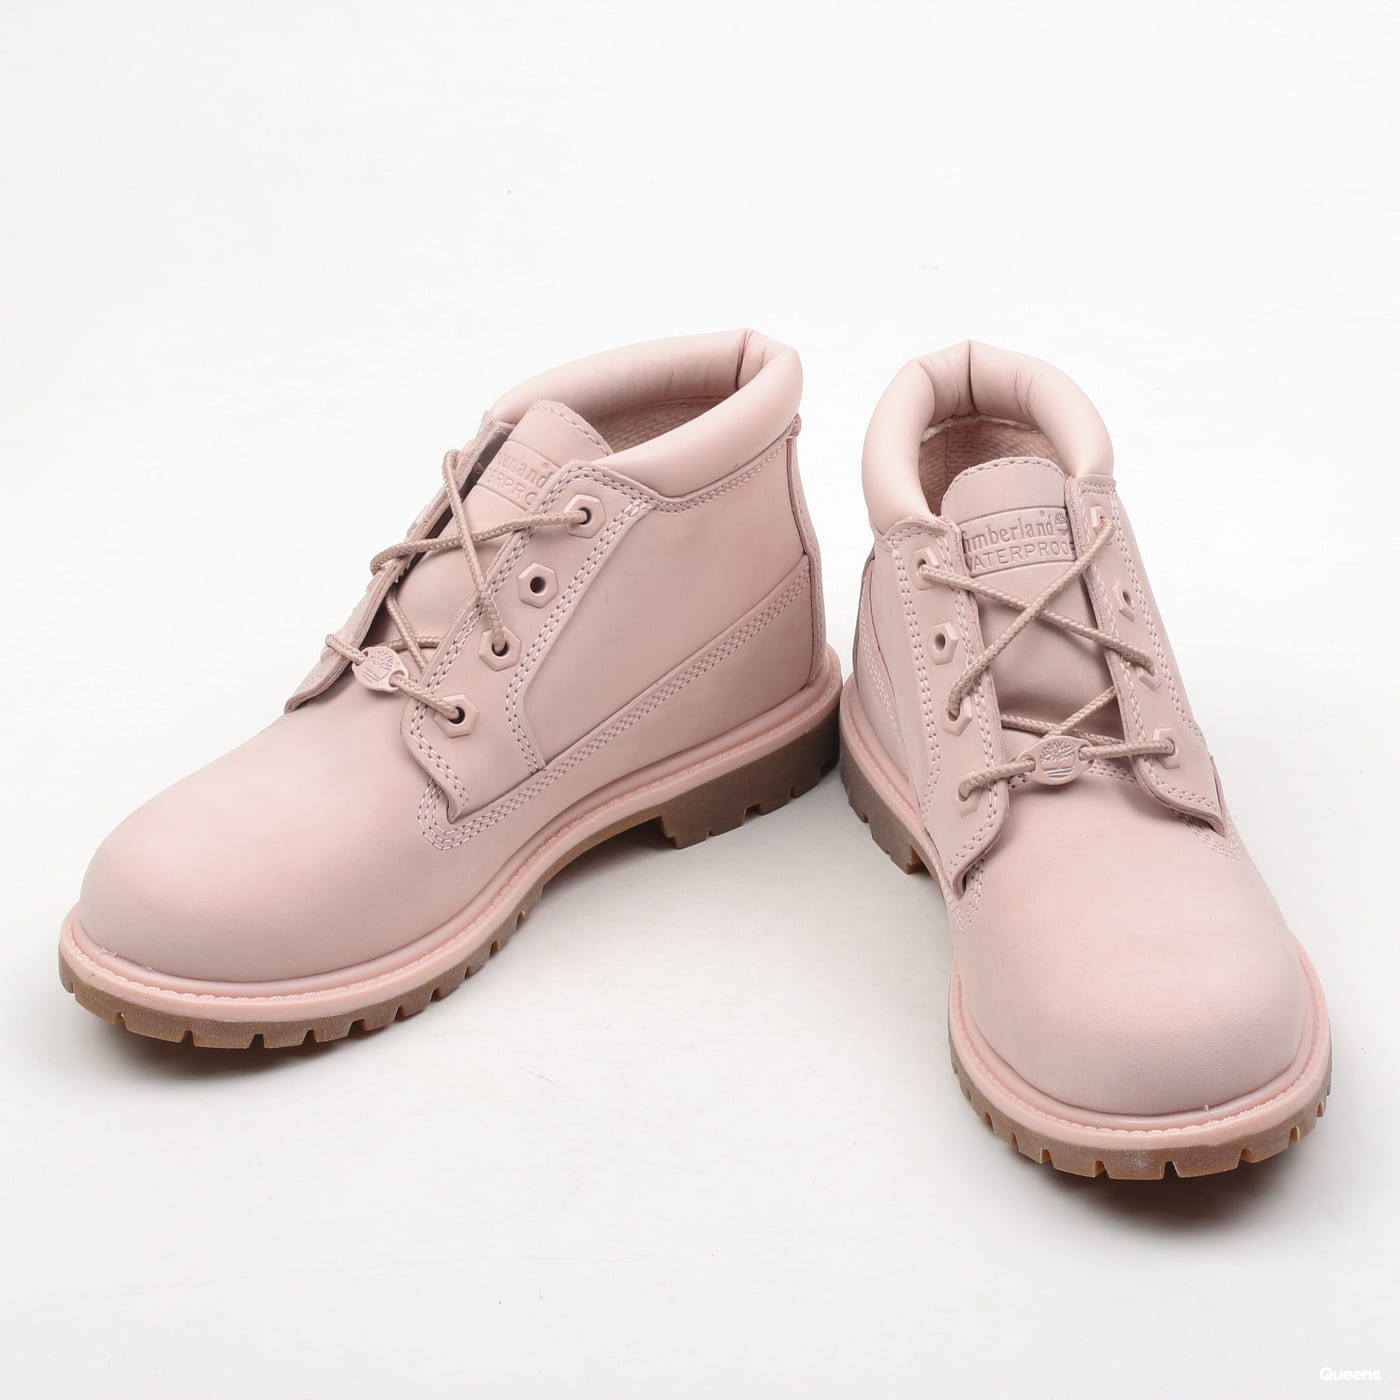 Timberland Nellie Chukka Double WP Boot rose nubuck